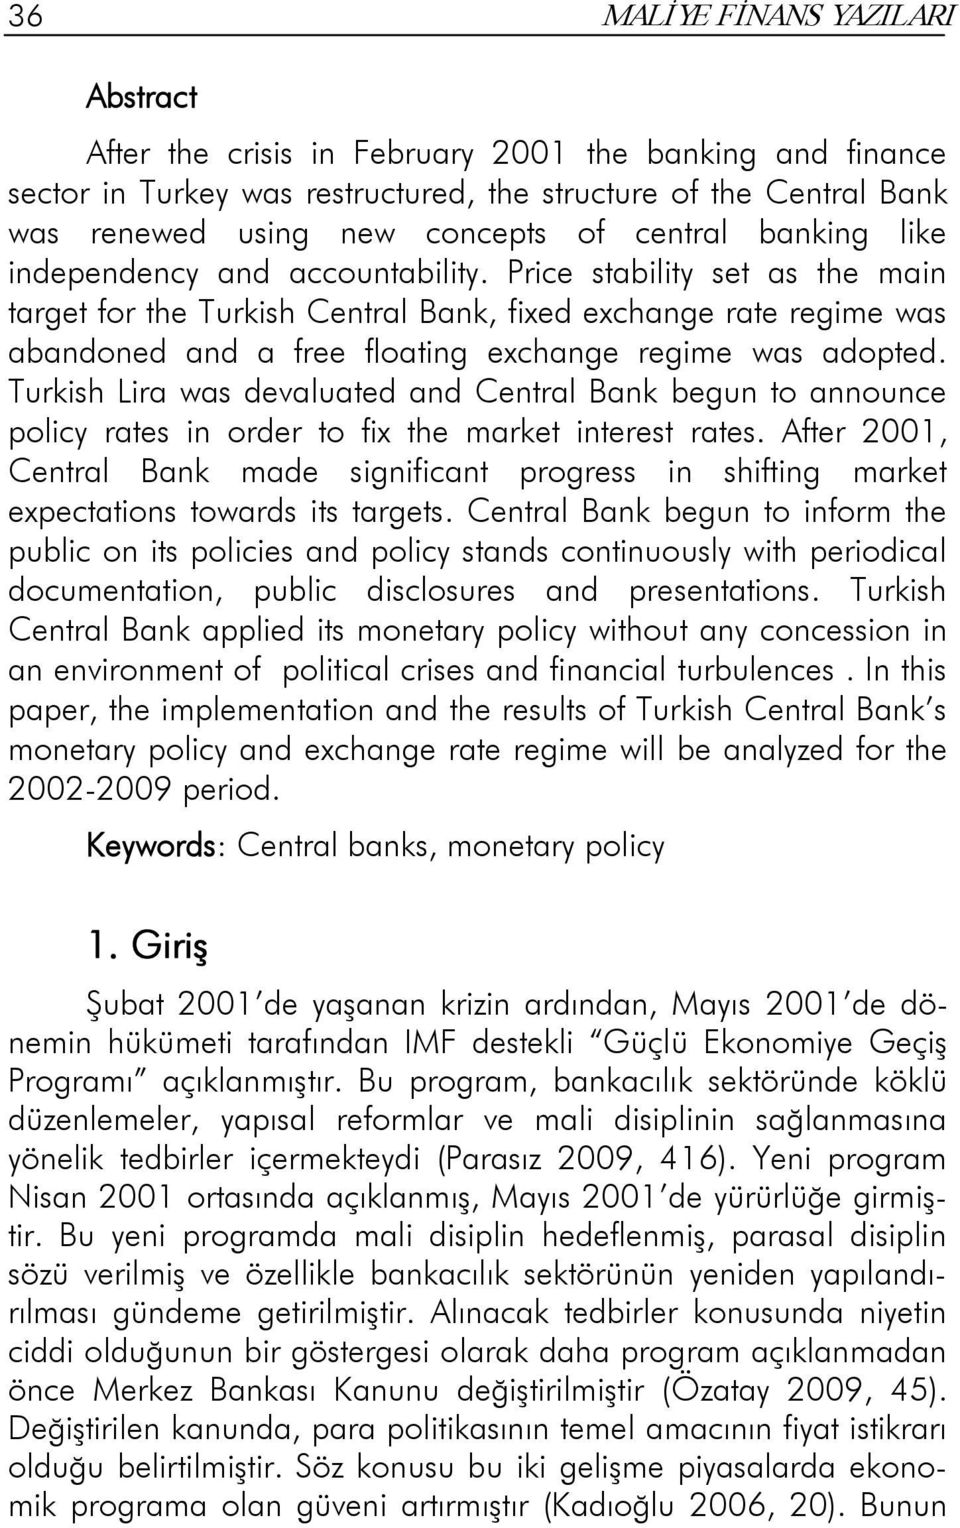 Price stability set as the main target for the Turkish Central Bank, fixed exchange rate regime was abandoned and a free floating exchange regime was adopted.